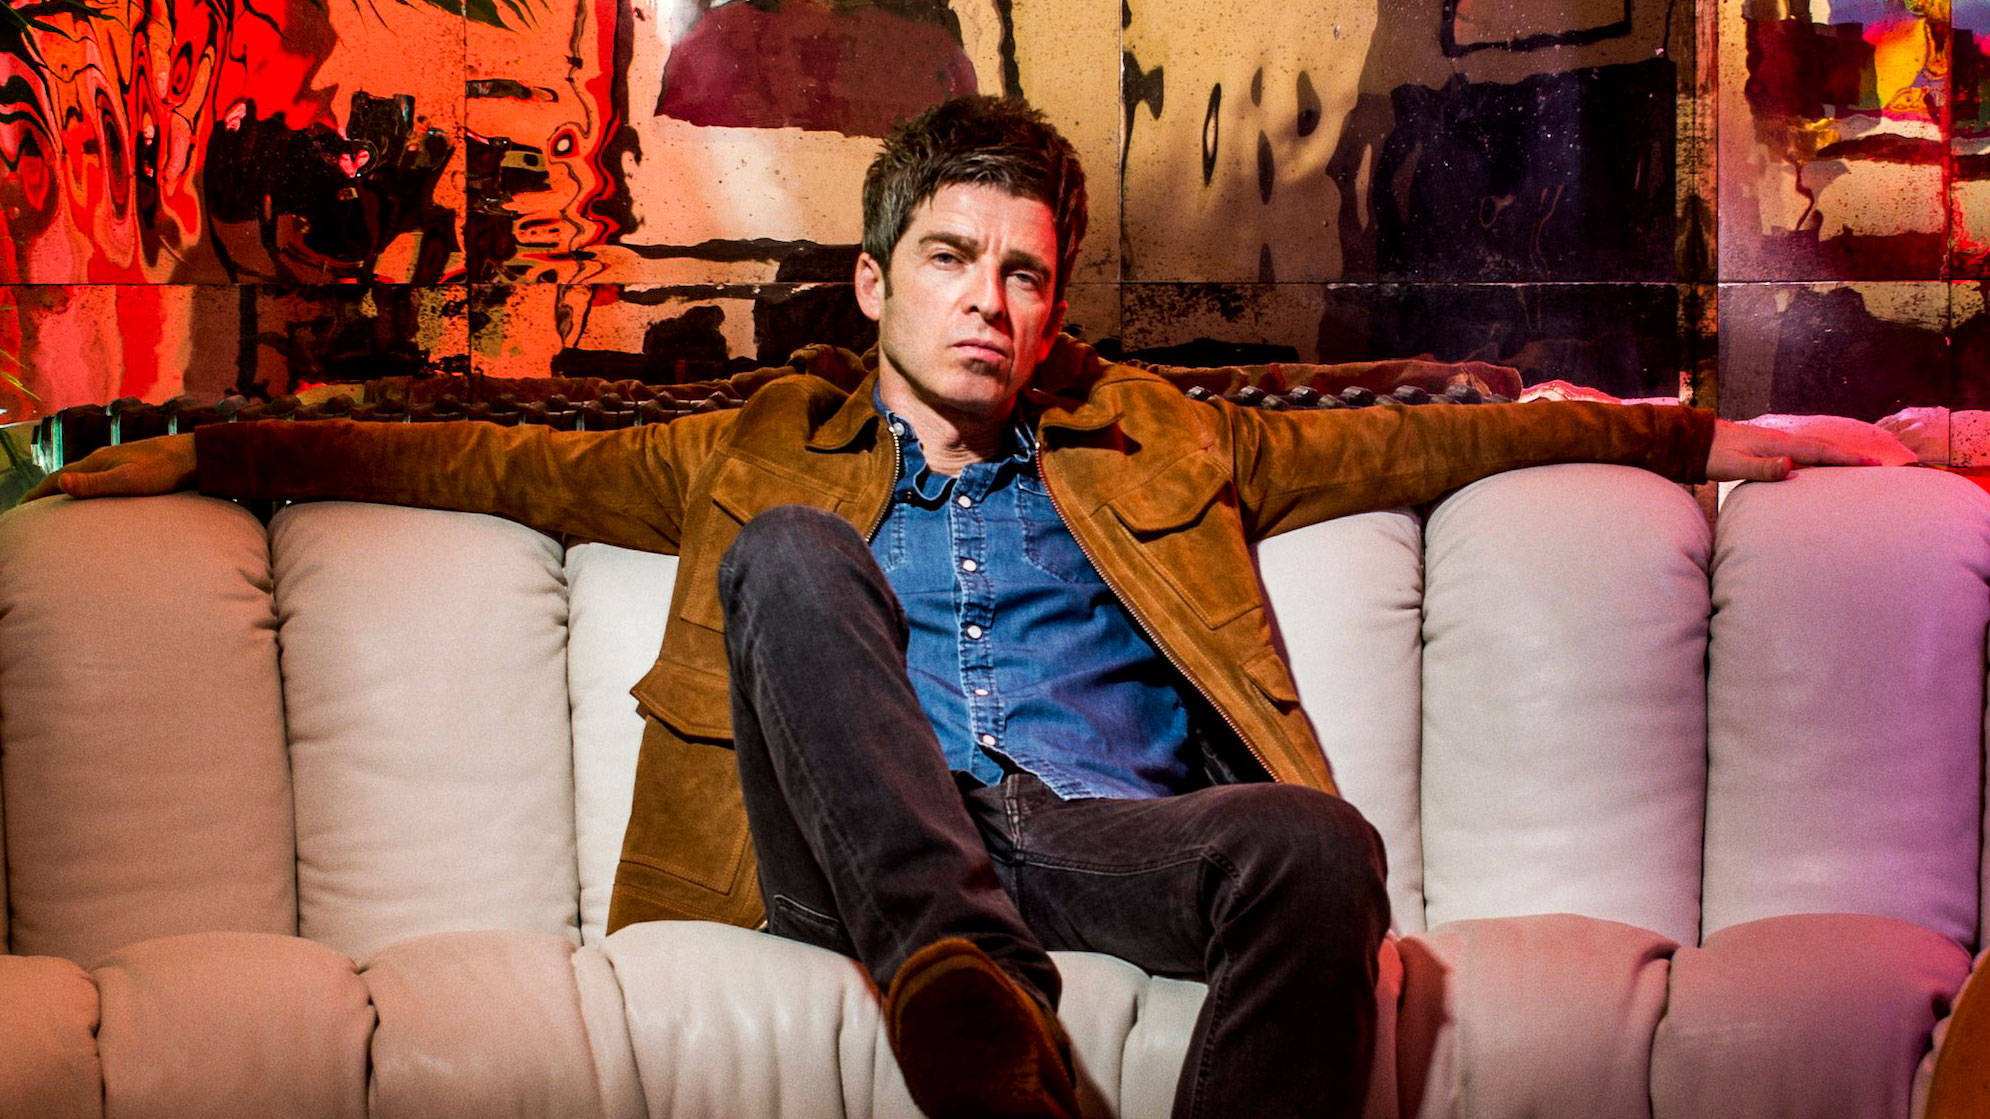 Noel Gallagher has collected up to 50,000 cigarettes worth £28k